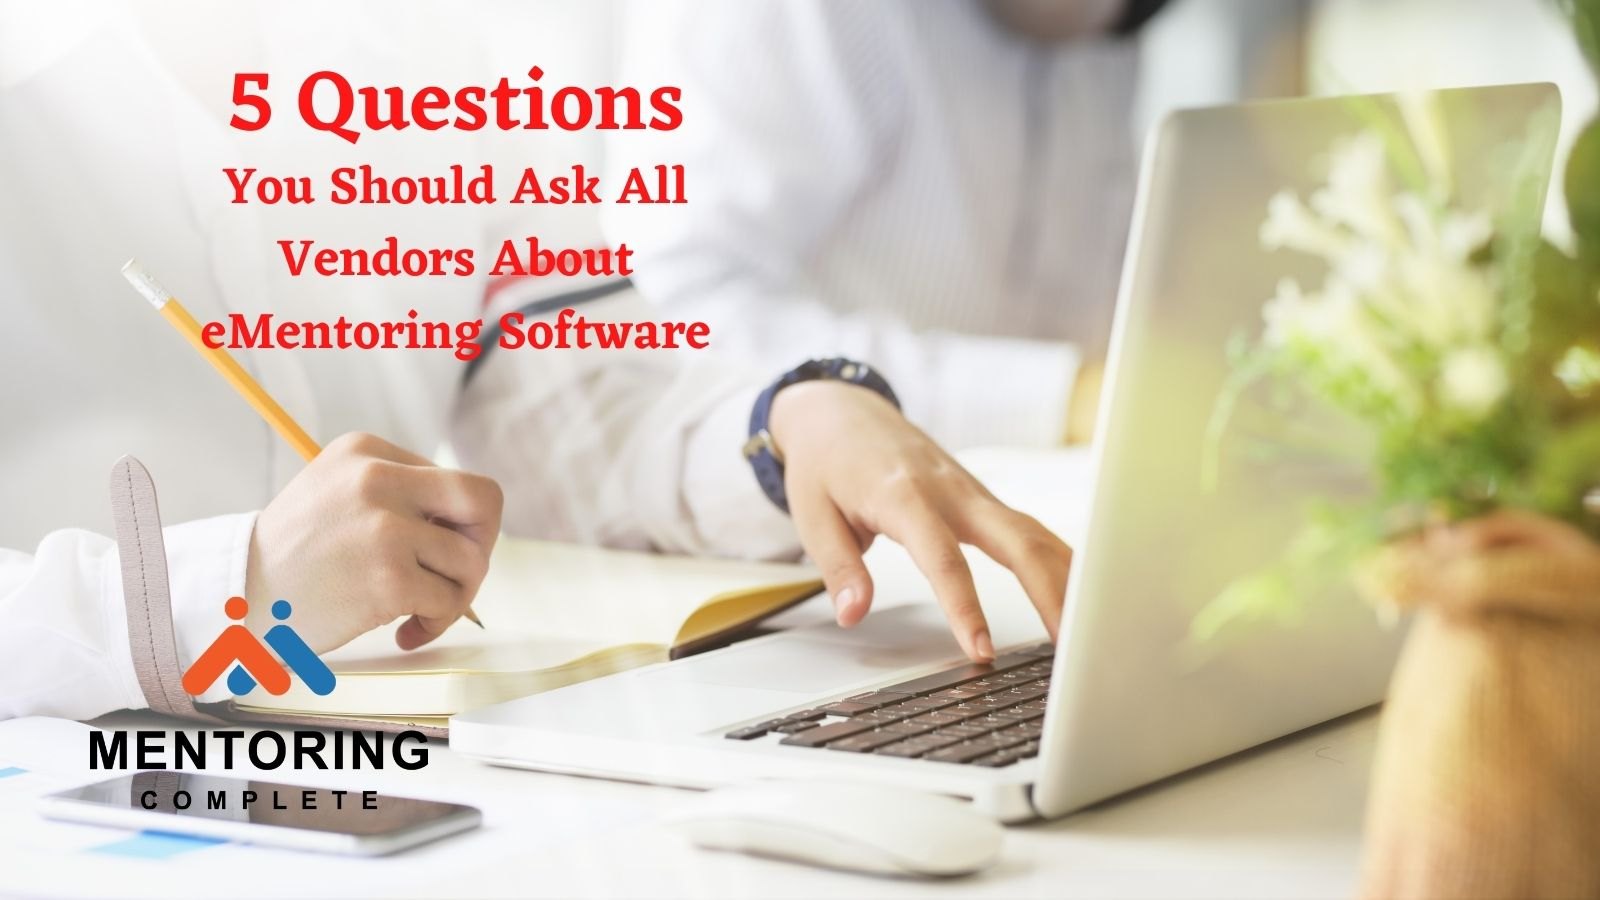 5 Questions to ask about mentoring software